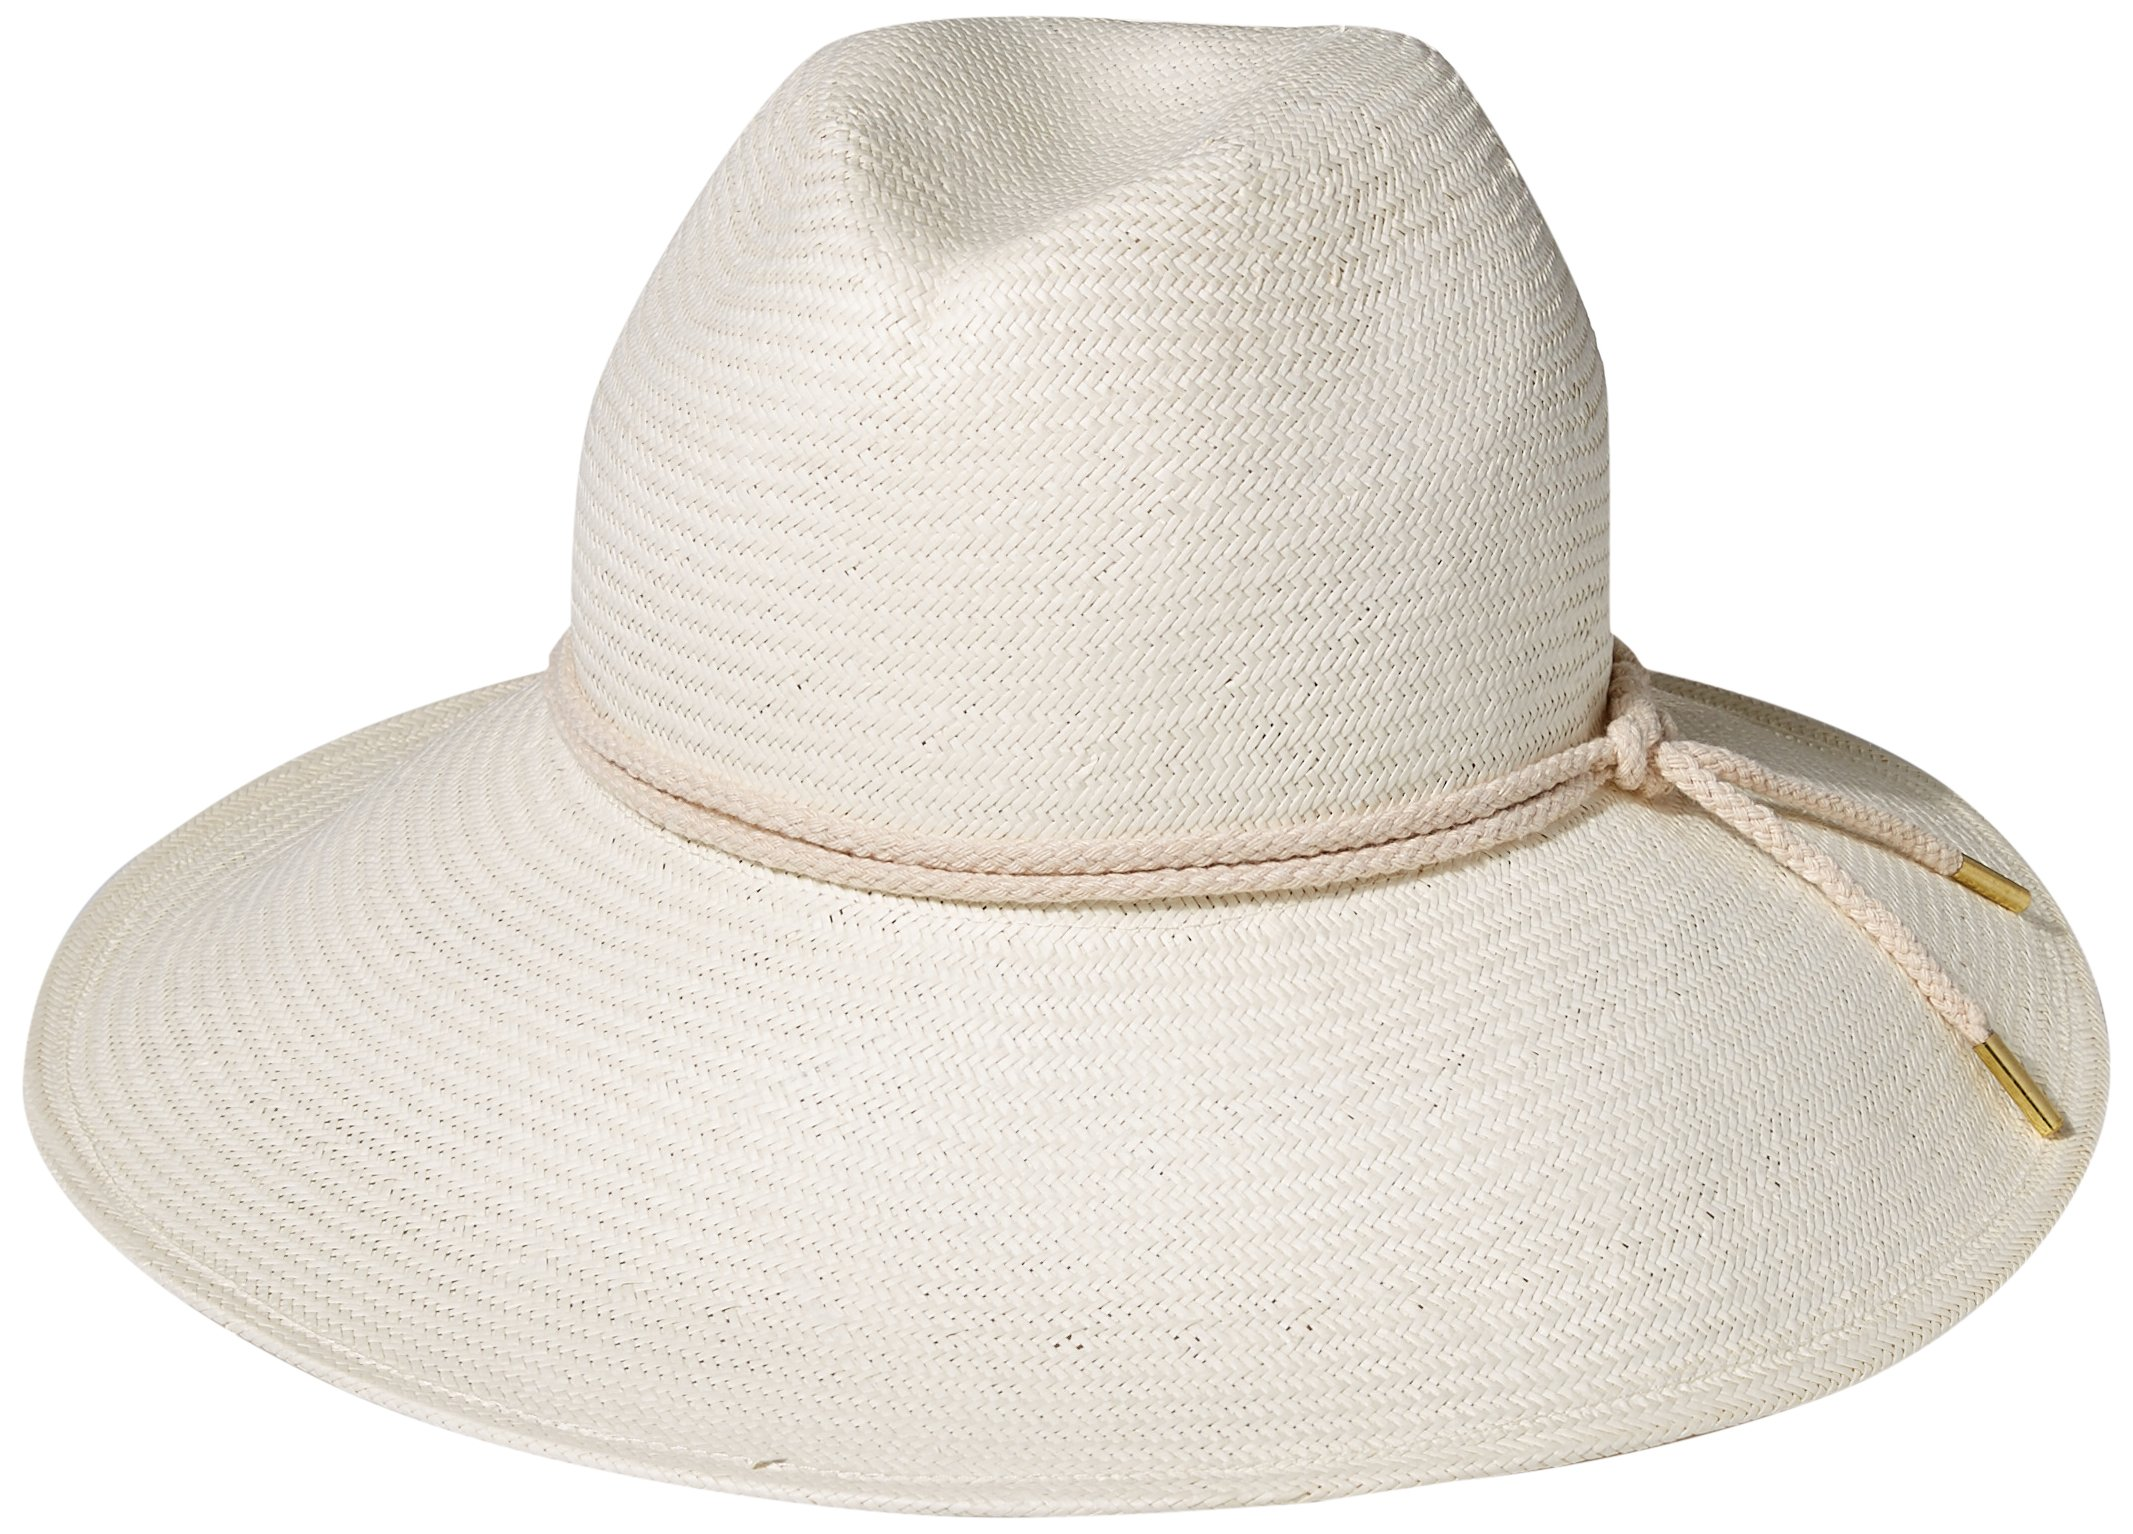 Gottex Women's Deauville Panama Sunhat Packable, Adjustable and UPF Rated, Ivory, One Size